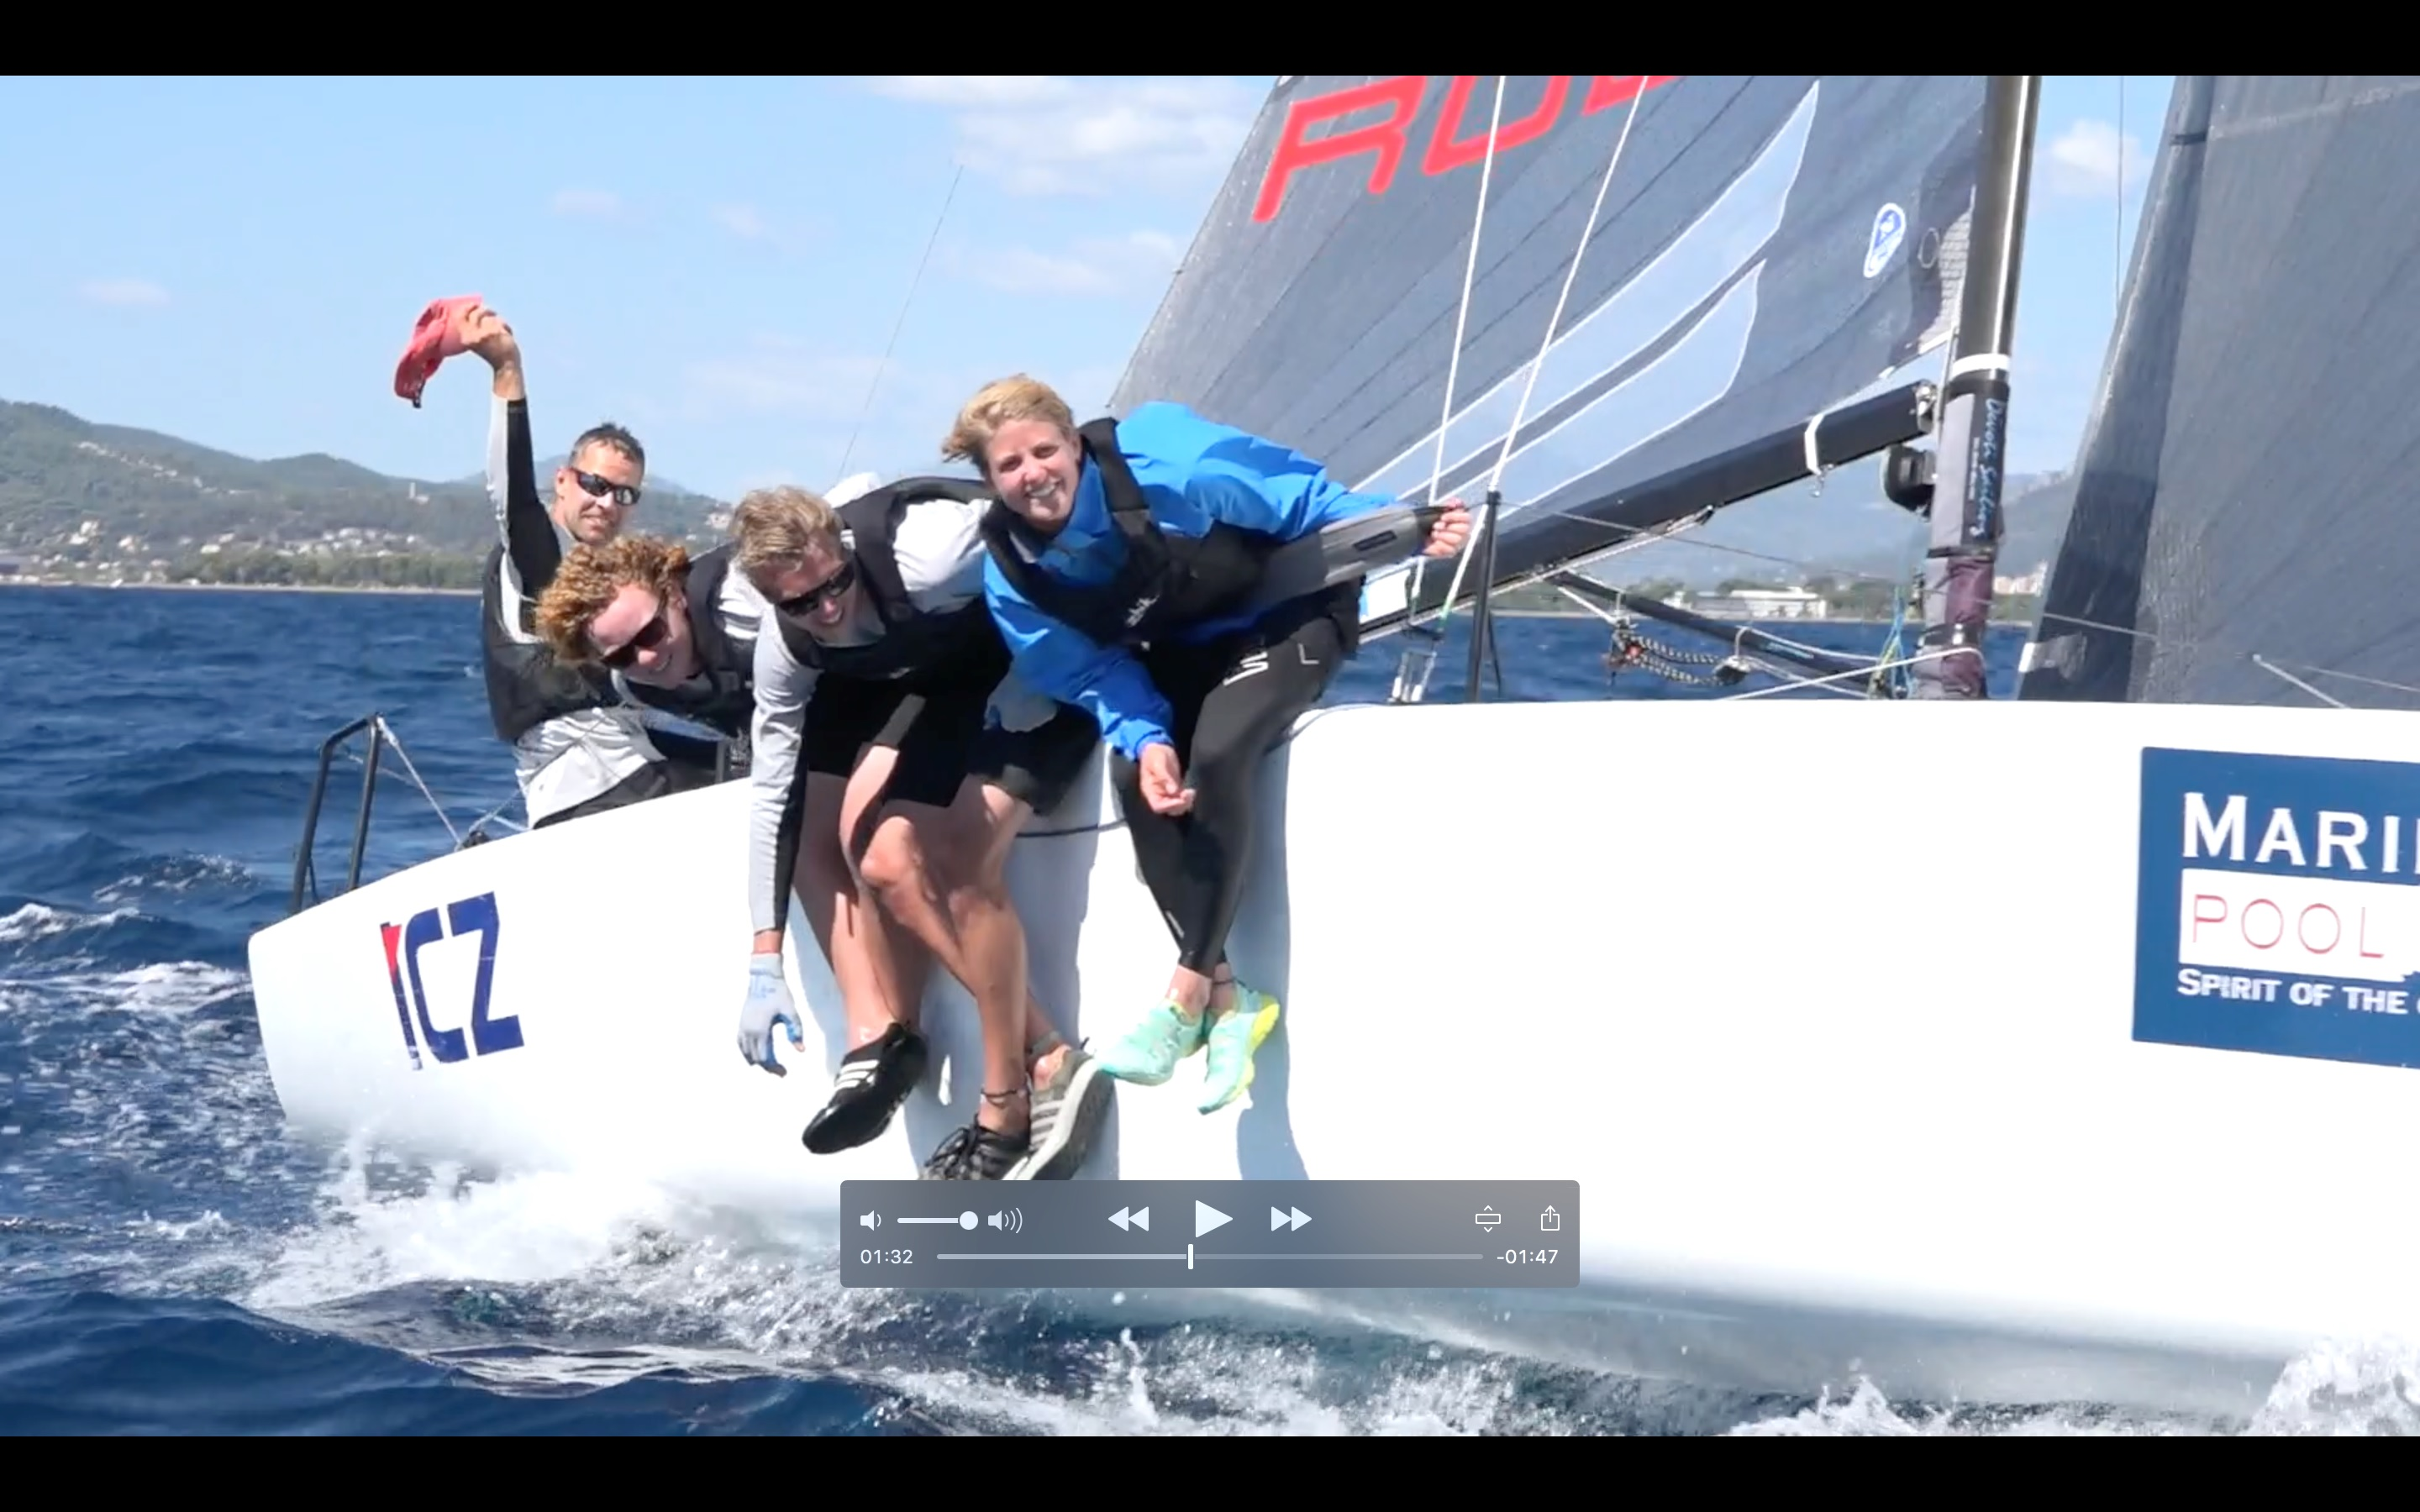 Day 3 video at the Melges 24 Europeans 2016